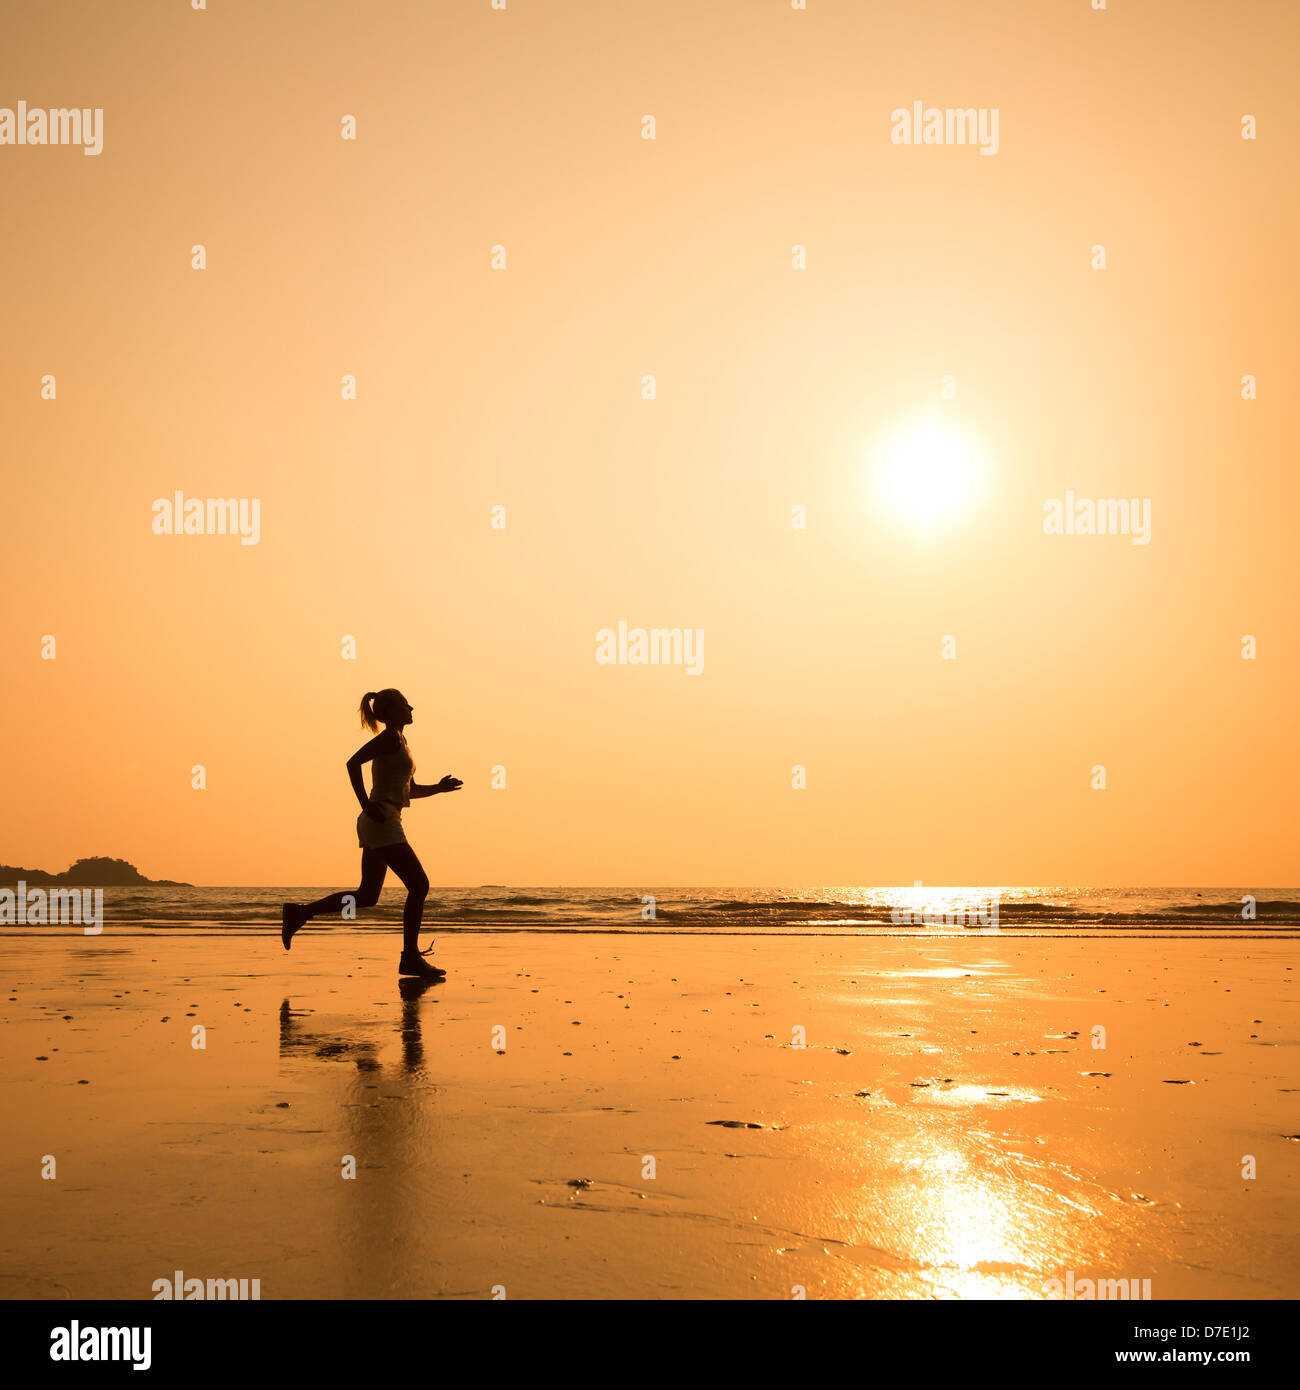 run to purpose, woman silhouette on the beach - Stock Image